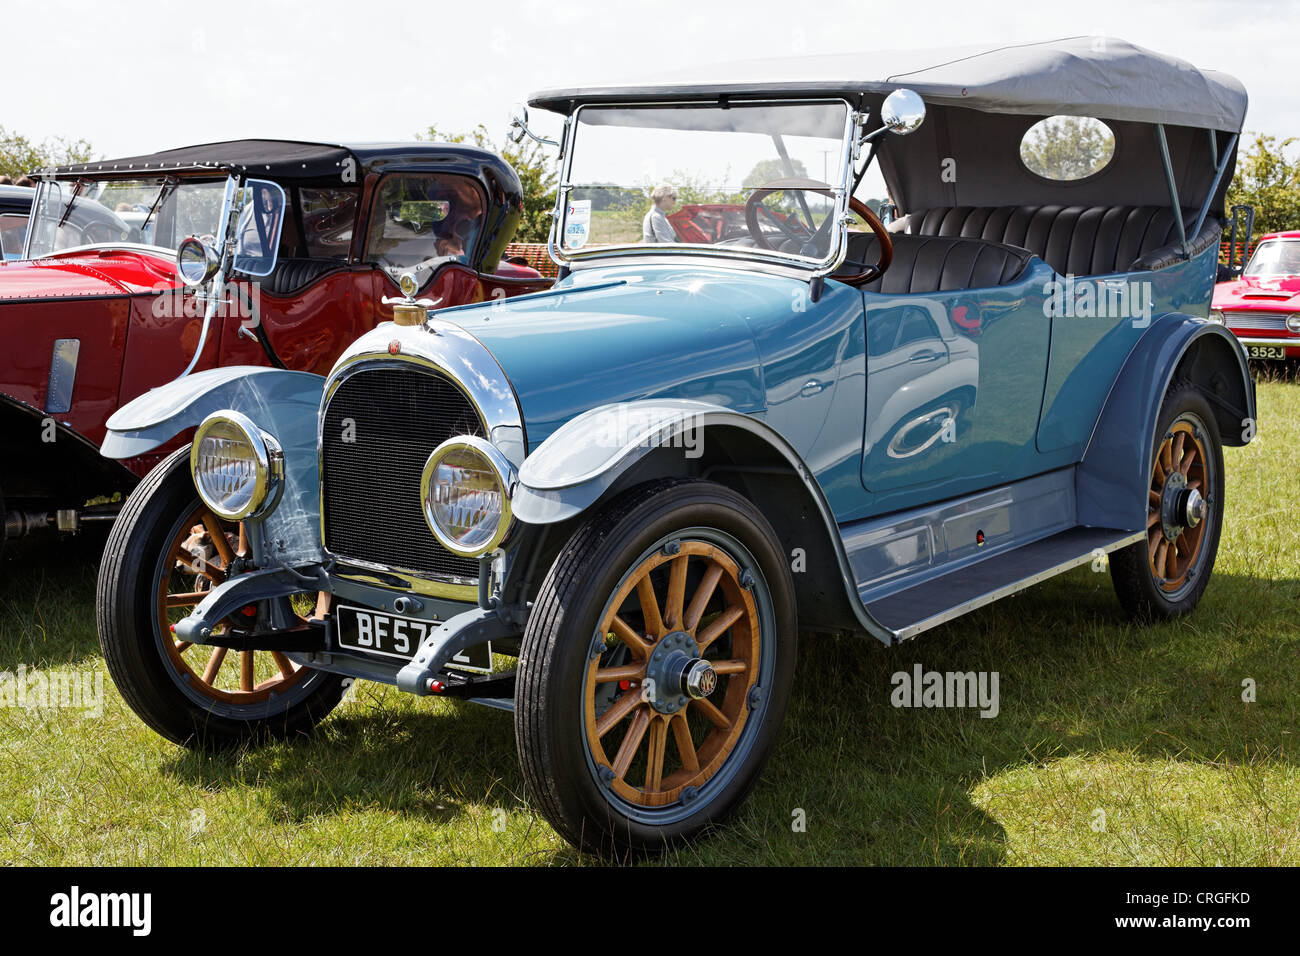 A Classic American Willys Knight Touring Car Dating From C Crgfkd on Knight Sleeve Valve Engine